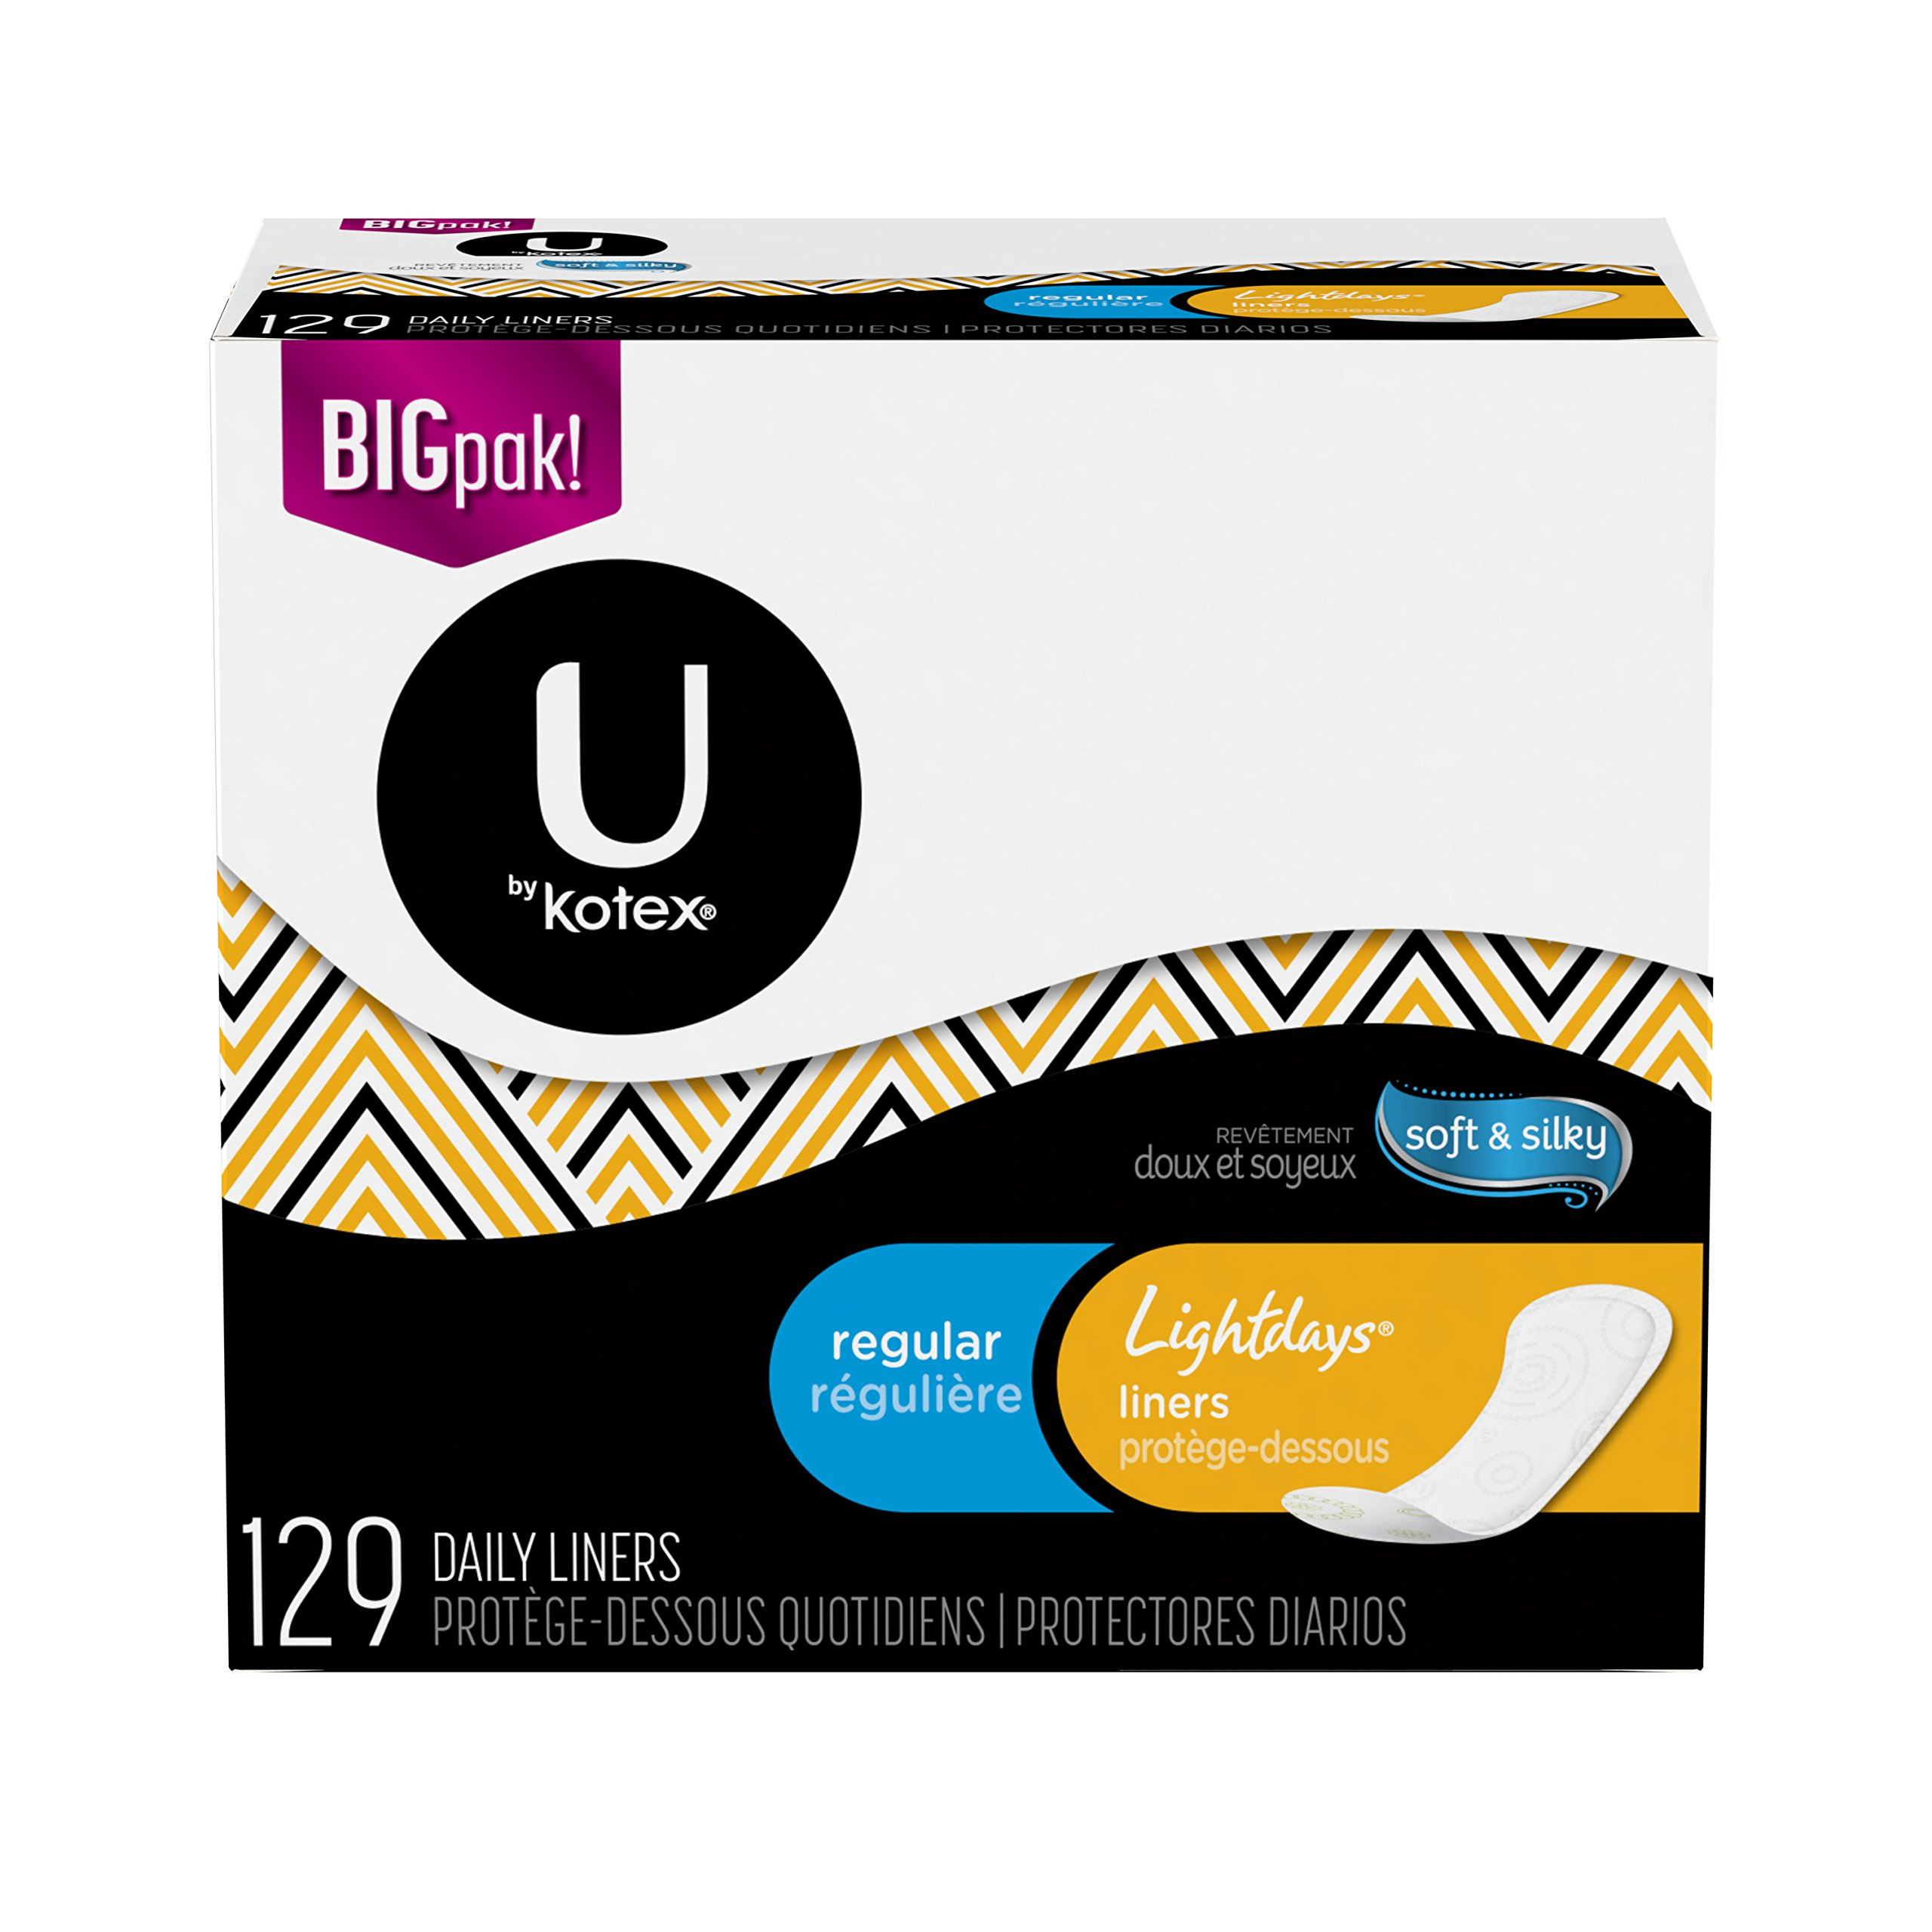 U by Kotex Lightdays Liners, Thin, Regular, Unscented (Pack of 6)